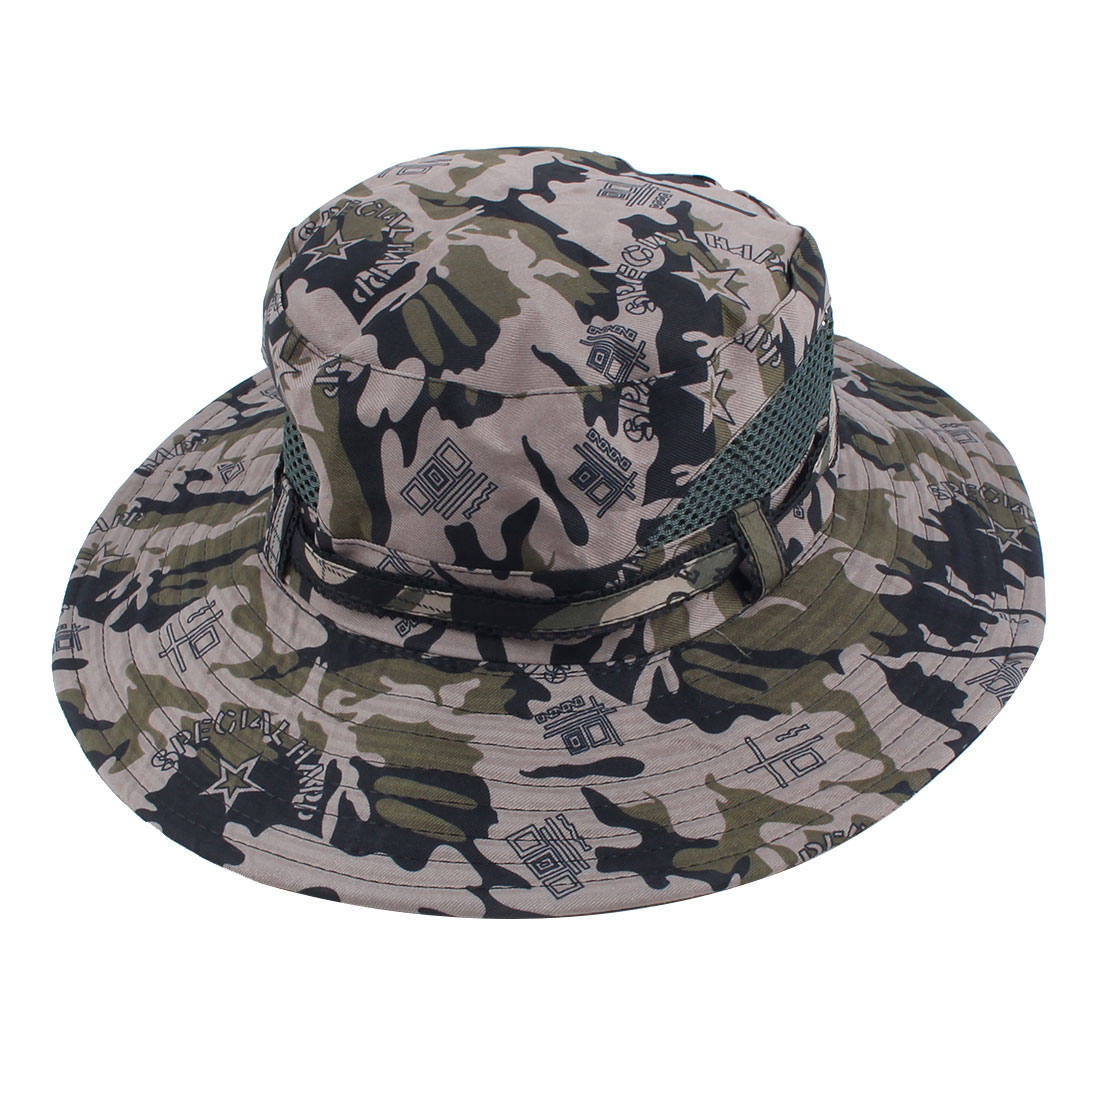 Fisherman Outdoor Sports Climbing Mountaineering Adjustable Strap Bucket Summer Cap Fishing Hat Camouflage